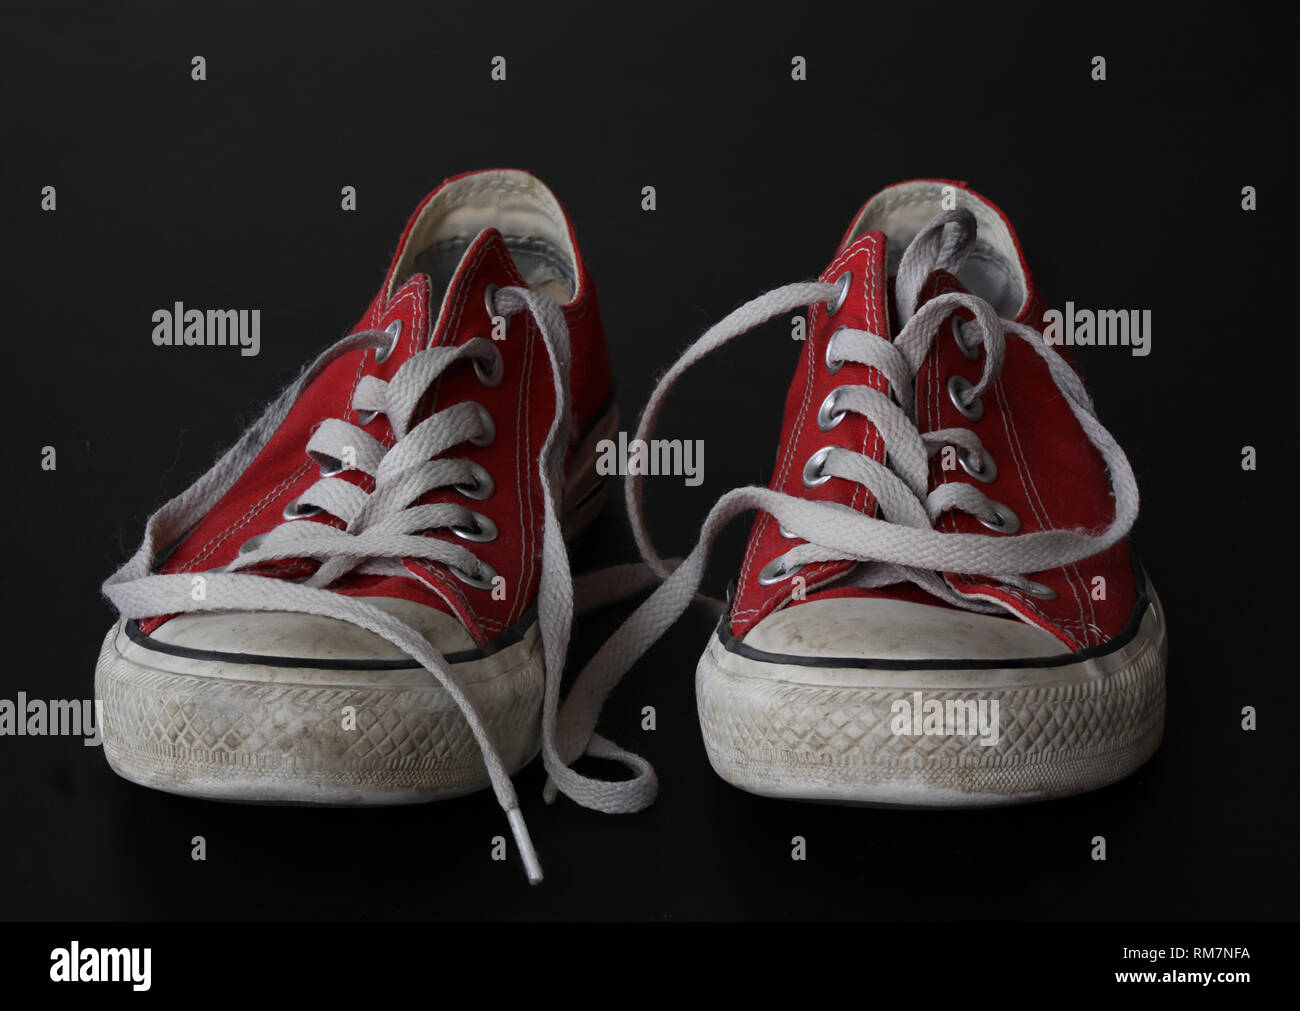 Close up of pair of sneakers - red and white vintage worn out shoes - youth hipster shoes on black background - Stock Image